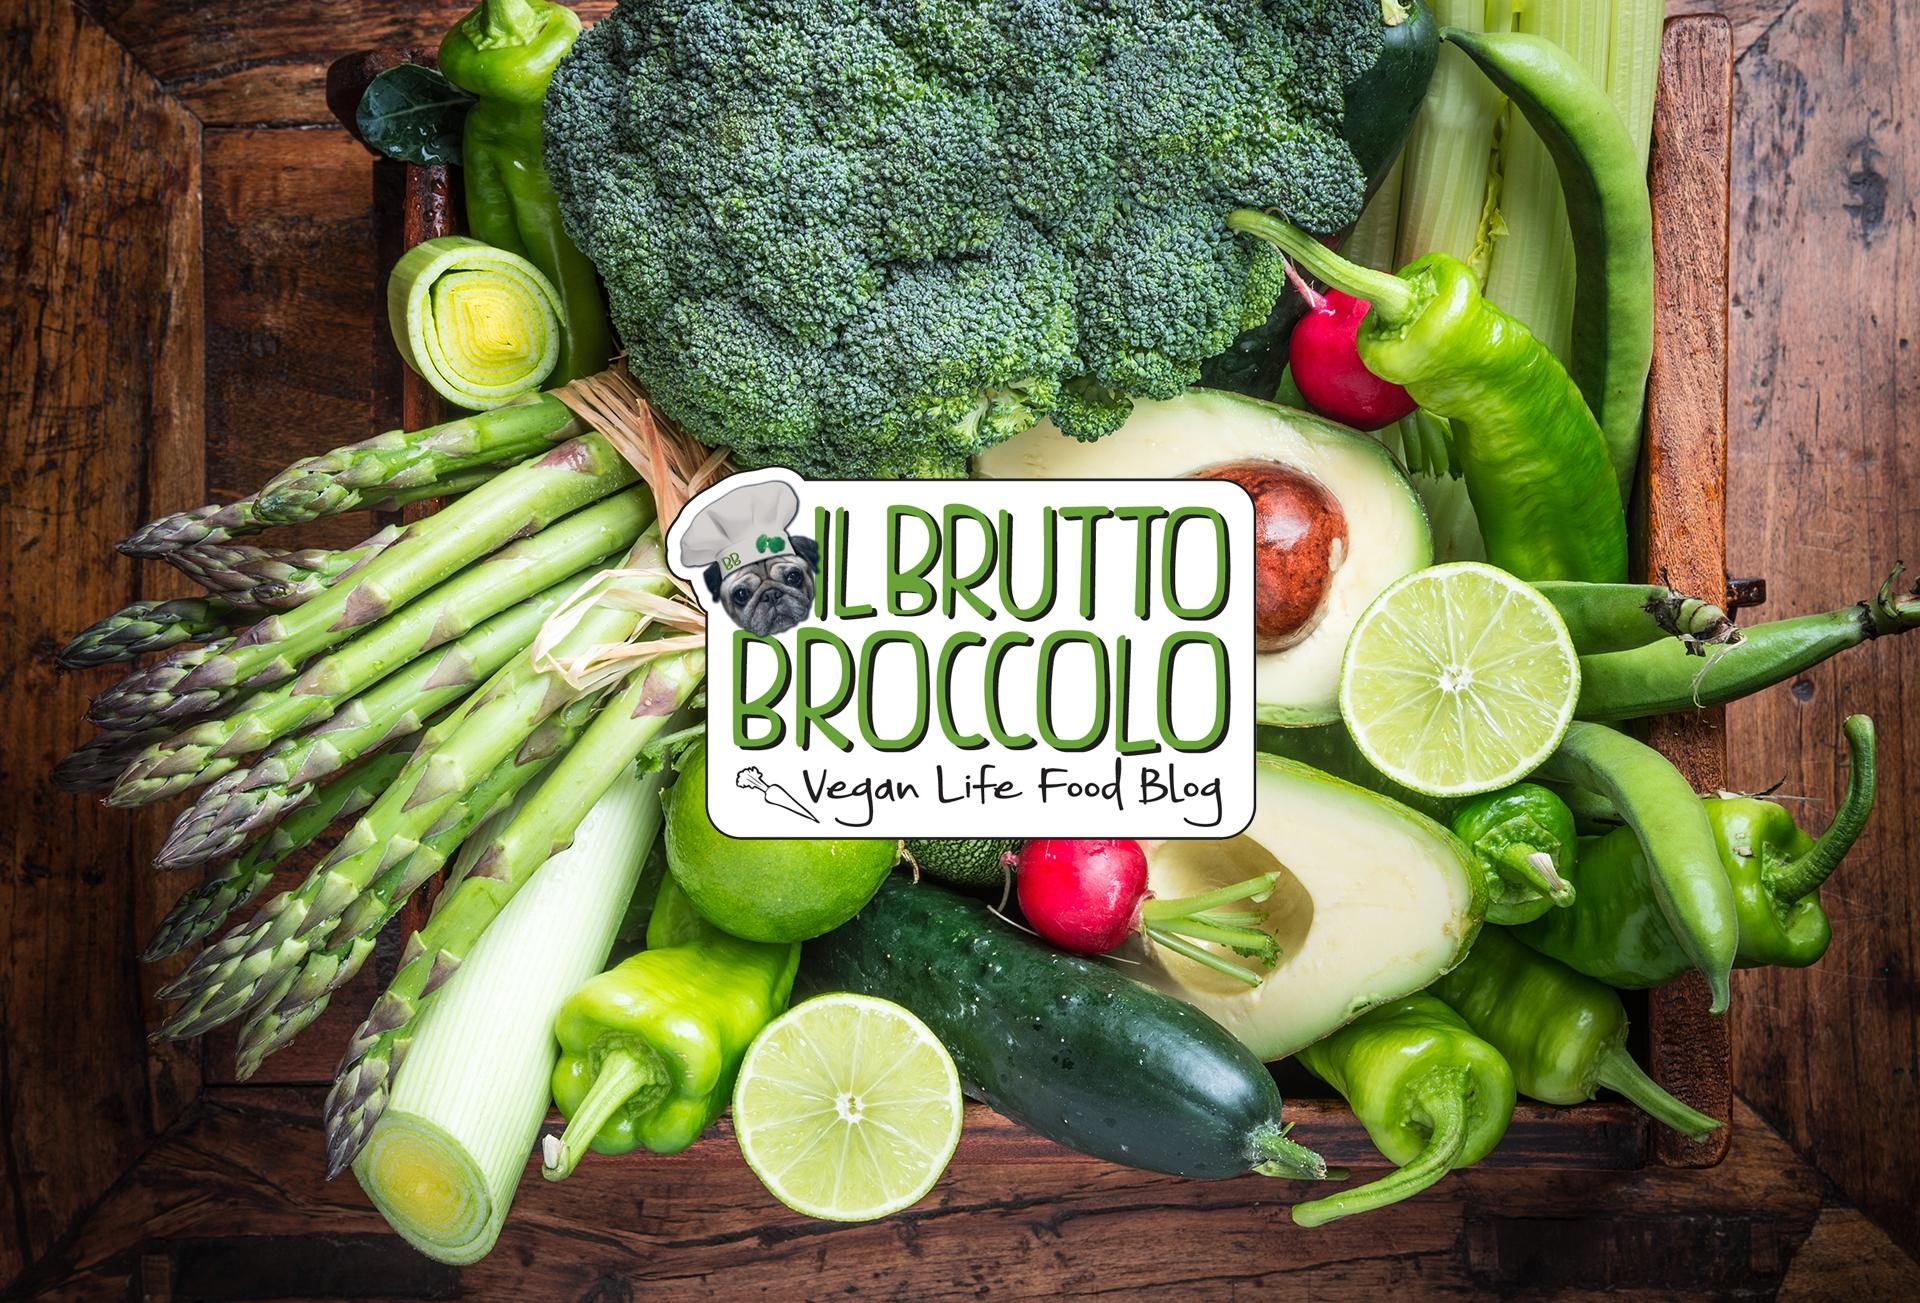 Noi del Brutto Broccolo